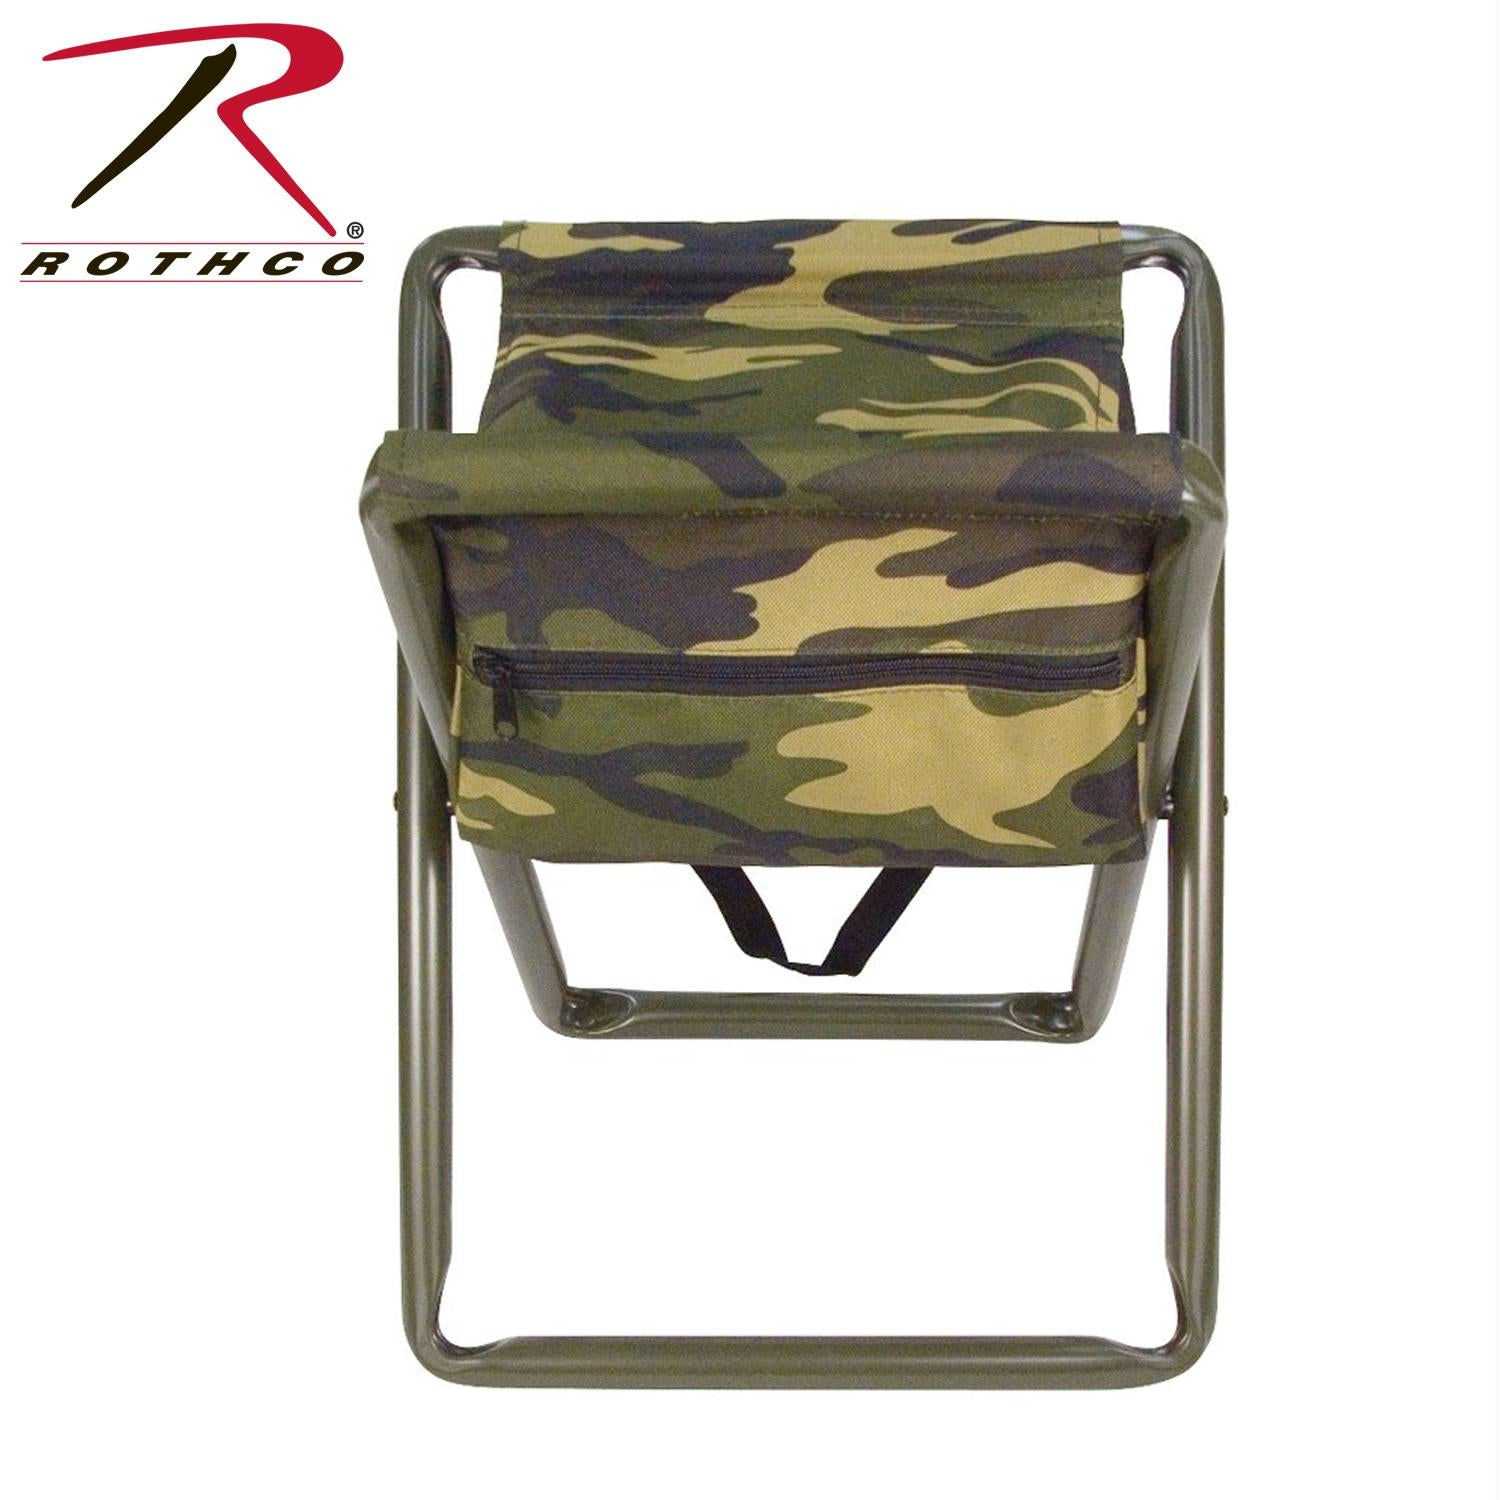 Rothco Deluxe Stool With Pouch - Woodland Camo